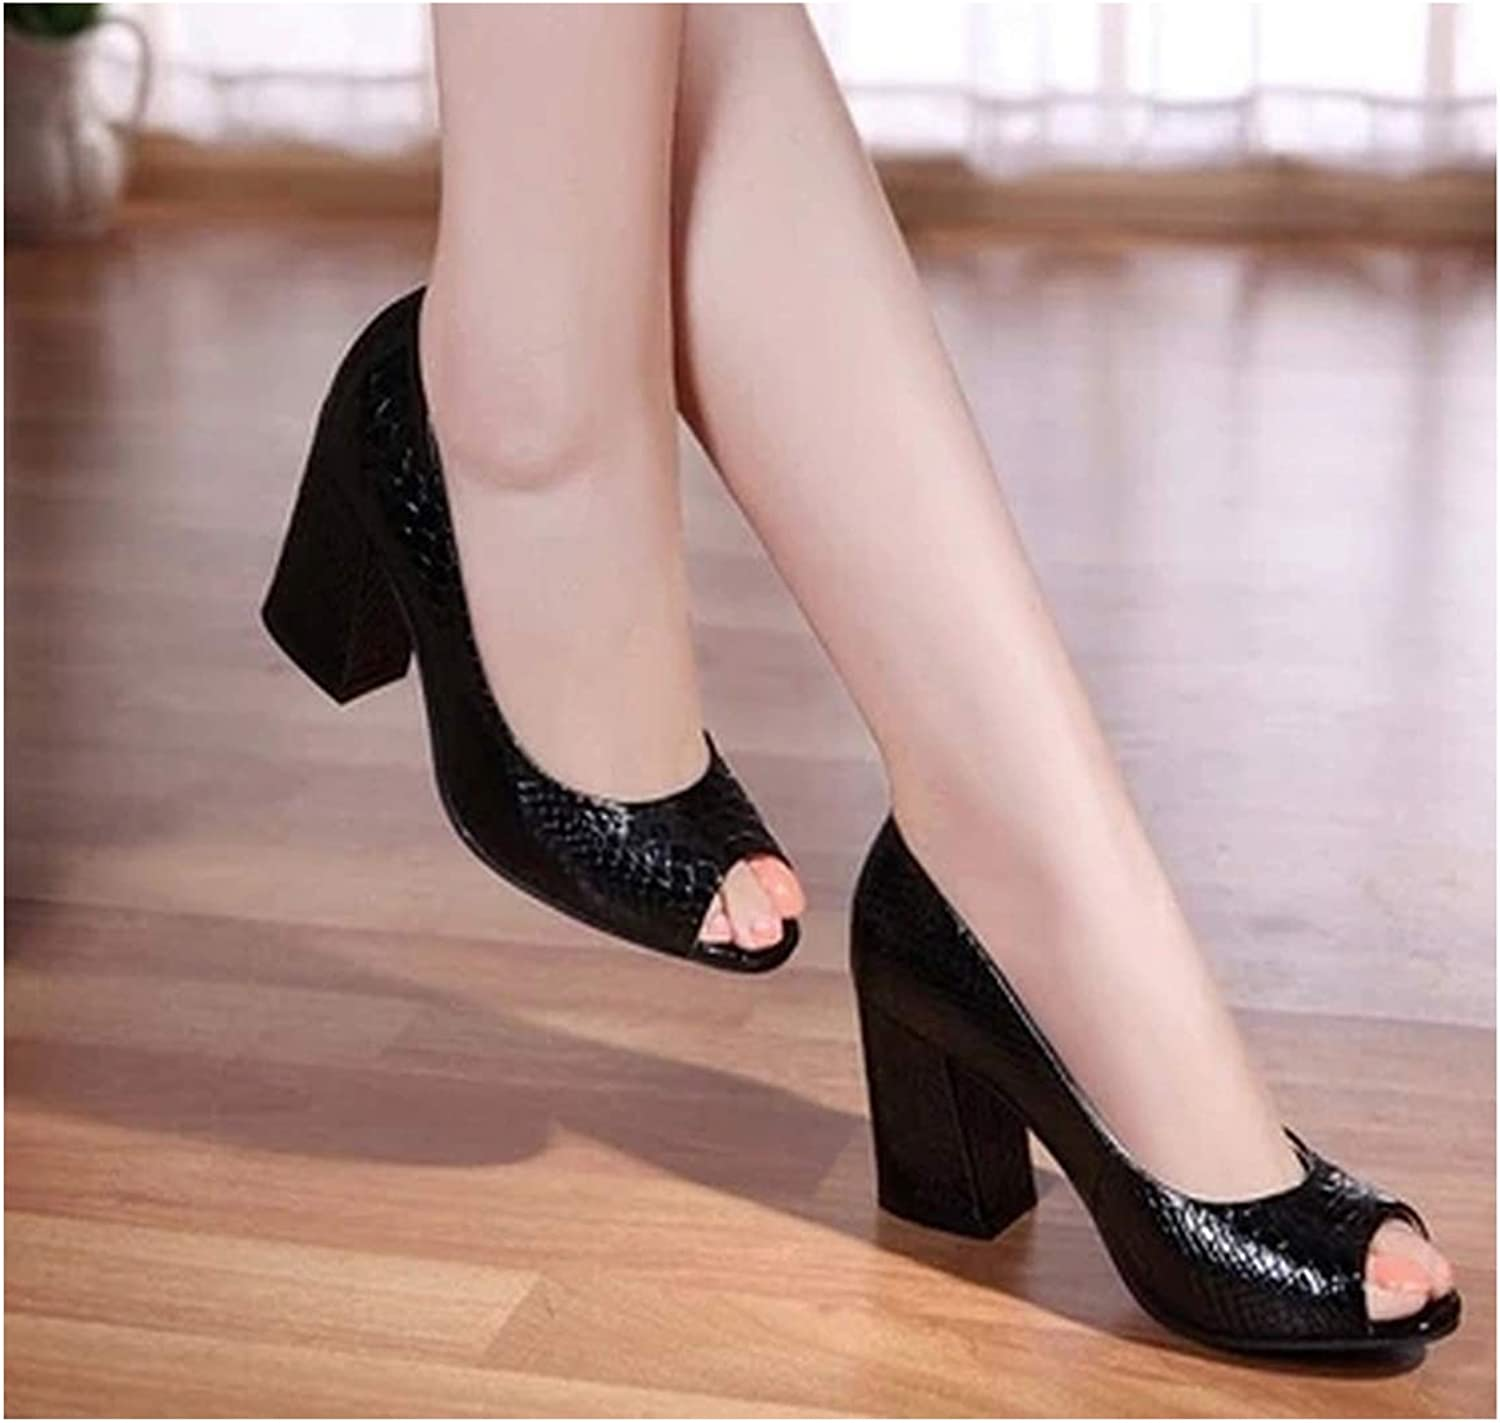 PREtty-2 2019 Summer shoes Woman Open Toe Women Genuine Leather High Heel Sandals Casual Platform Sandals